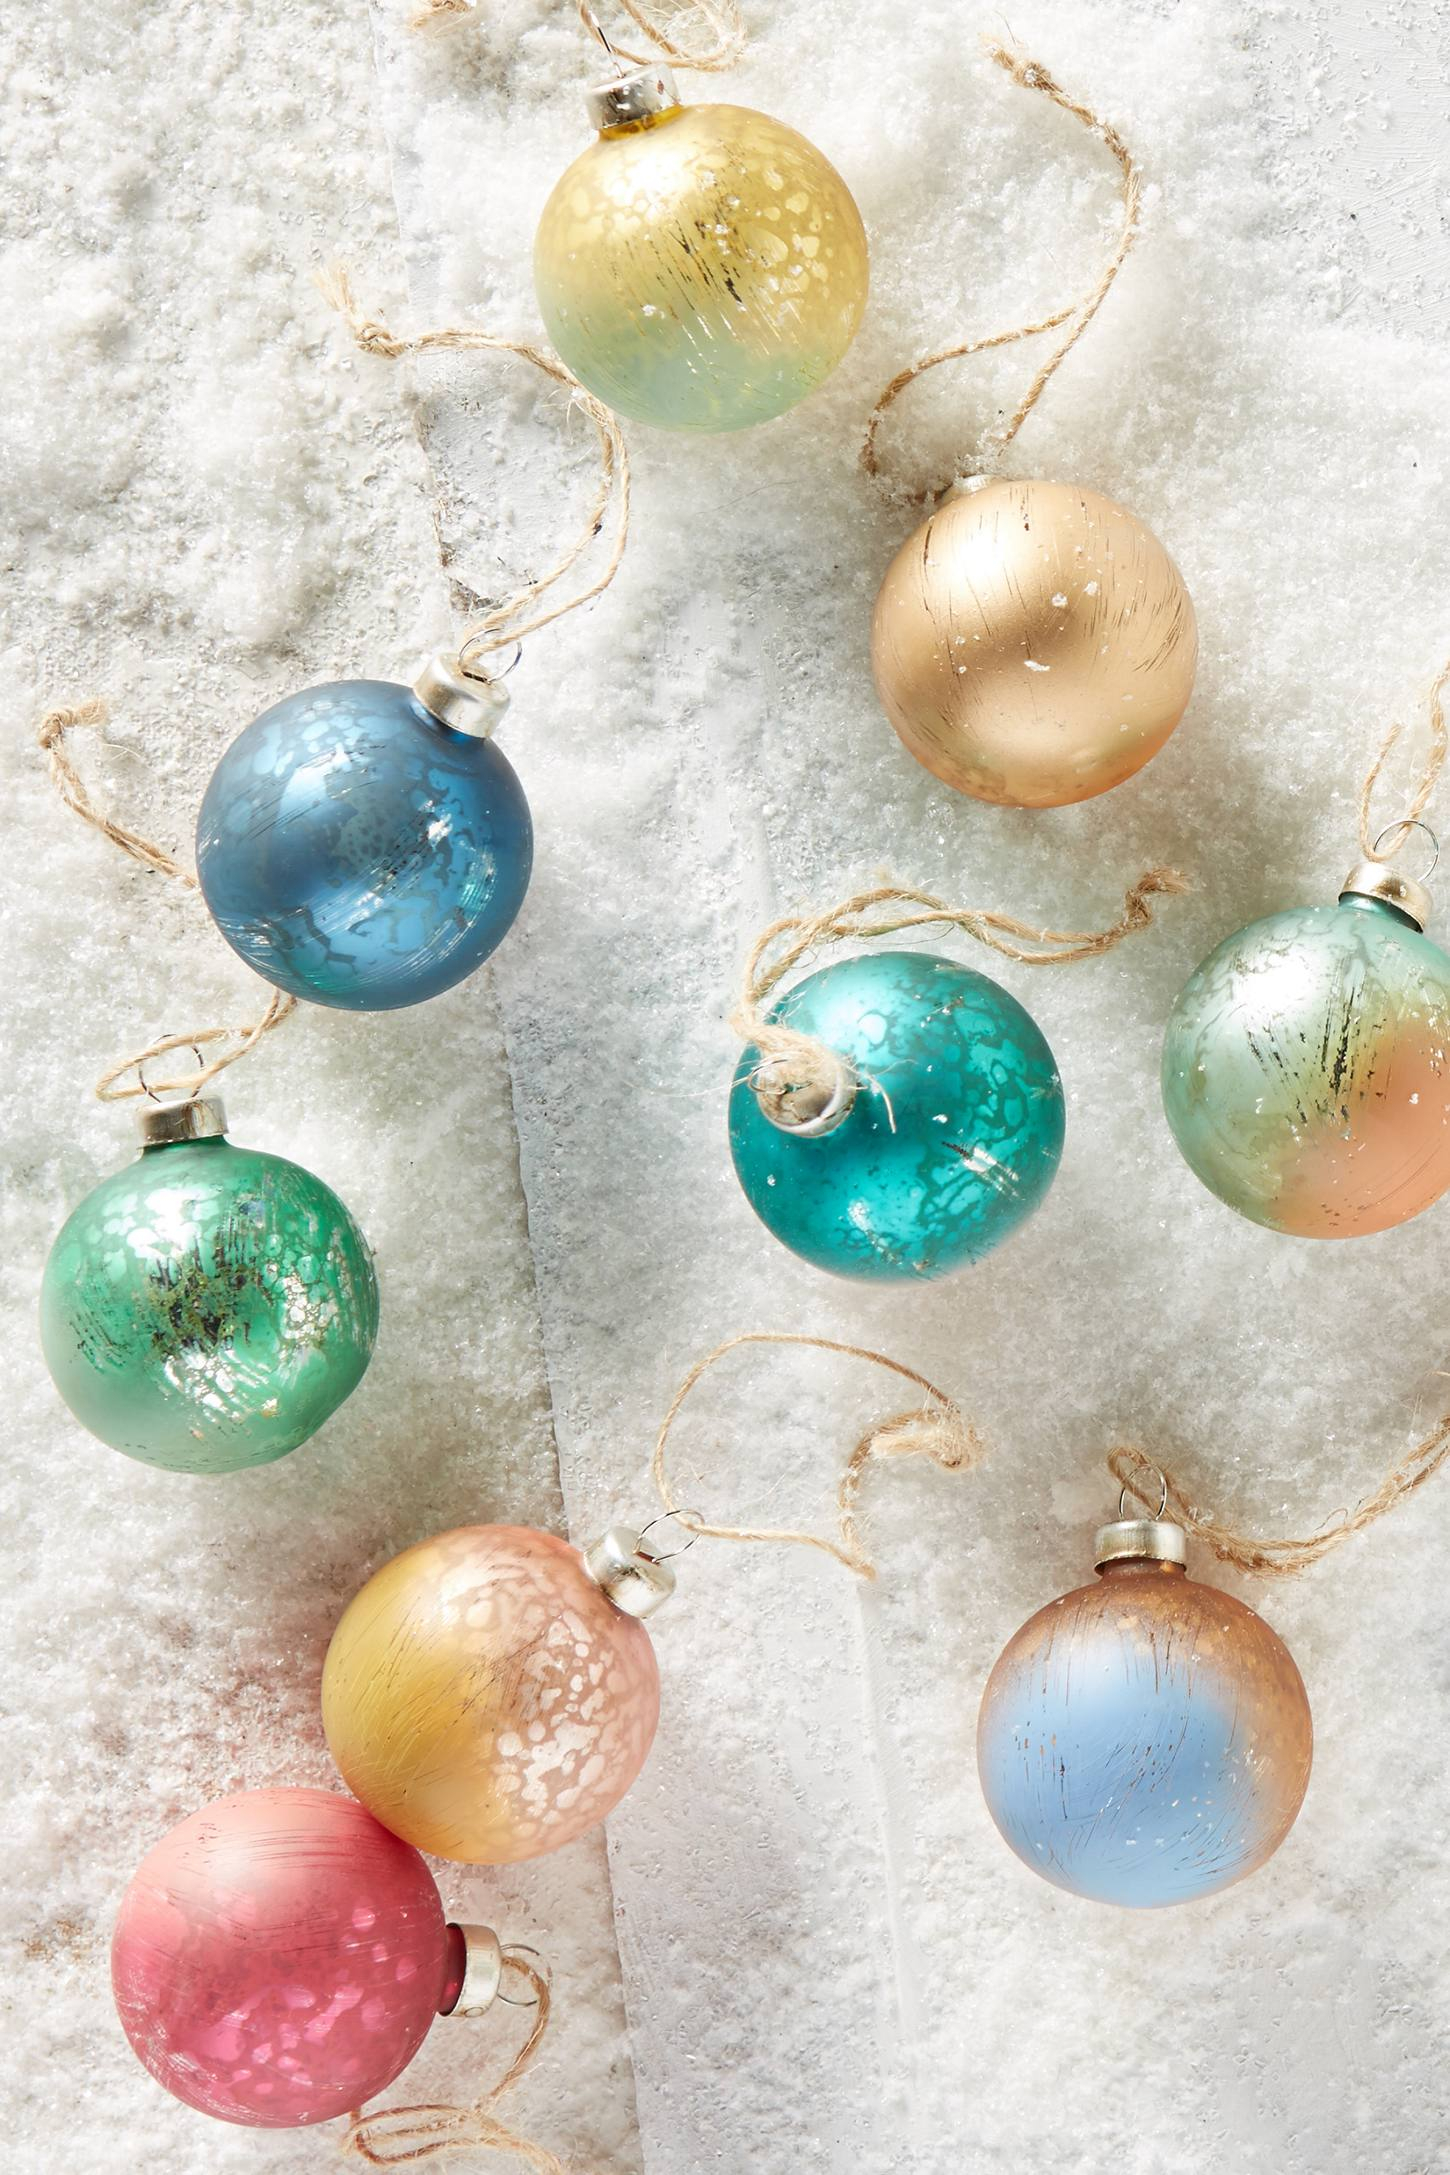 Dip-Dyed Ornaments